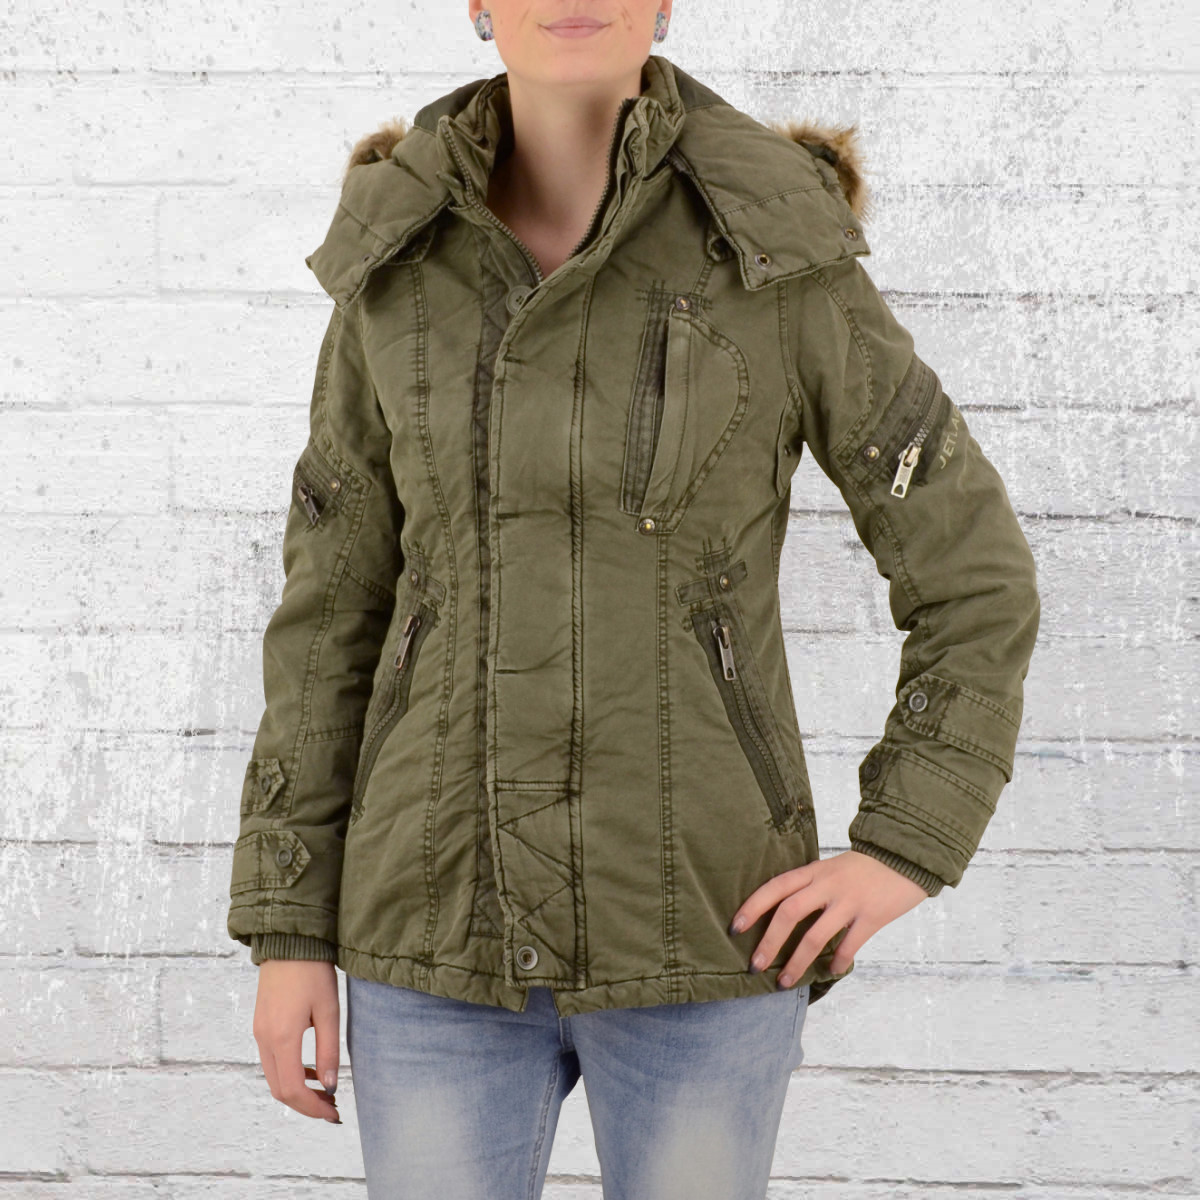 Jet Lag Womens Winter Jacket Ladies Parka army green. ›‹ «